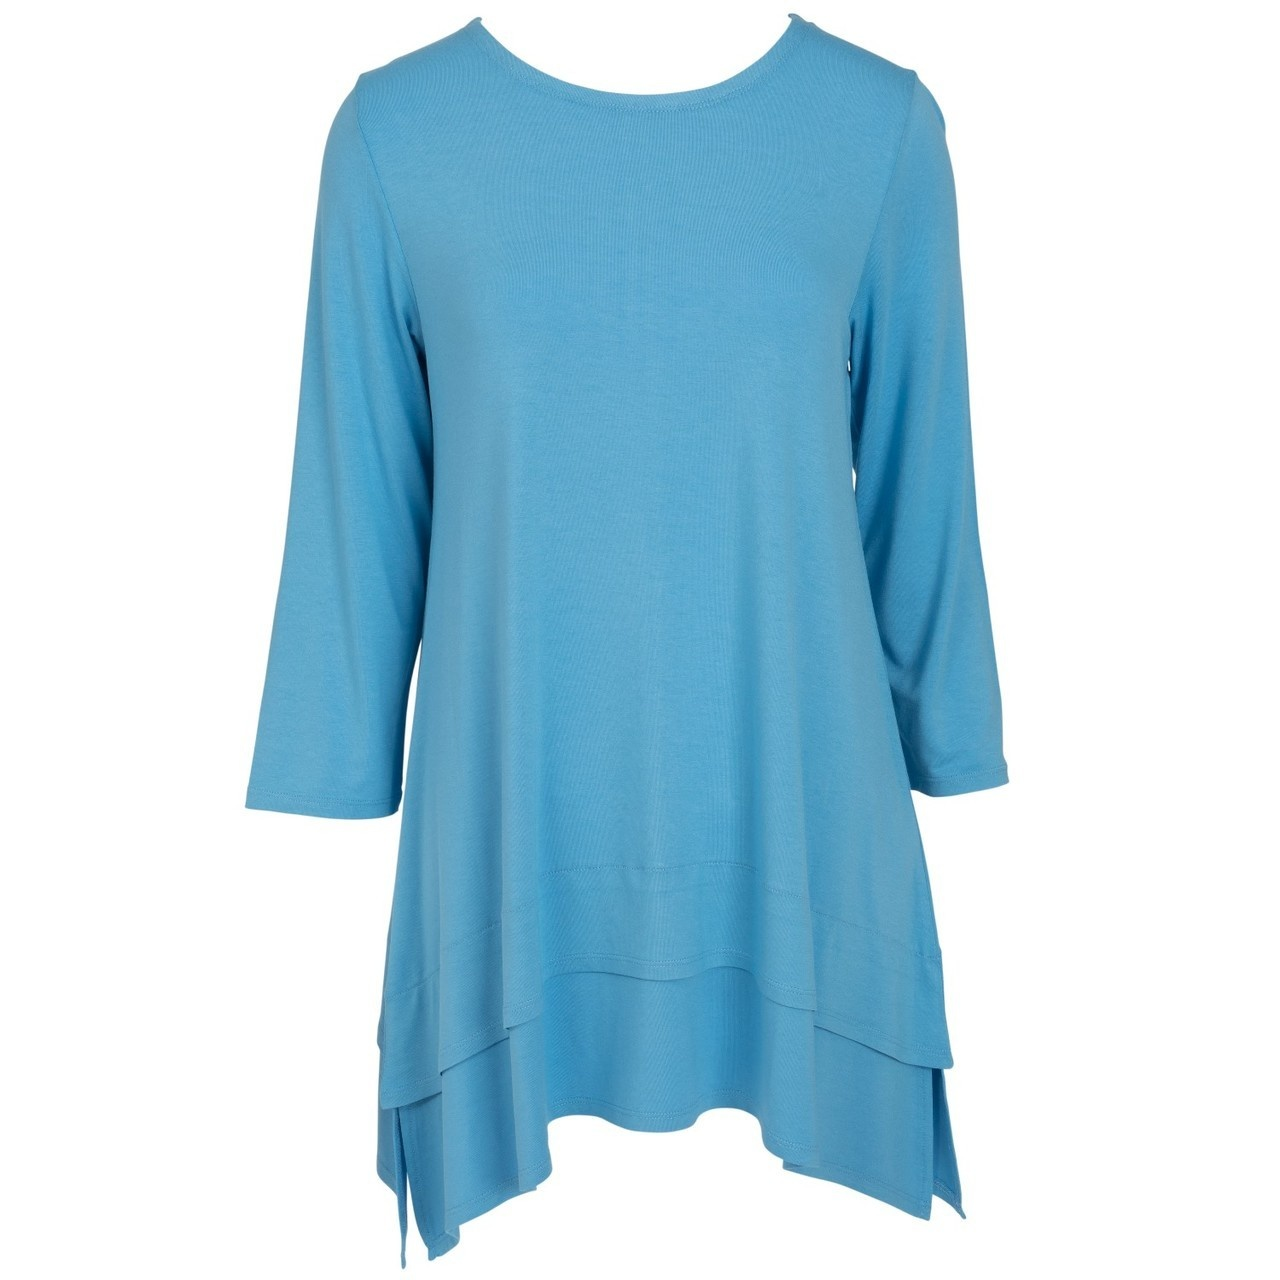 Double Layer Tunic - Azure Blue - XXL